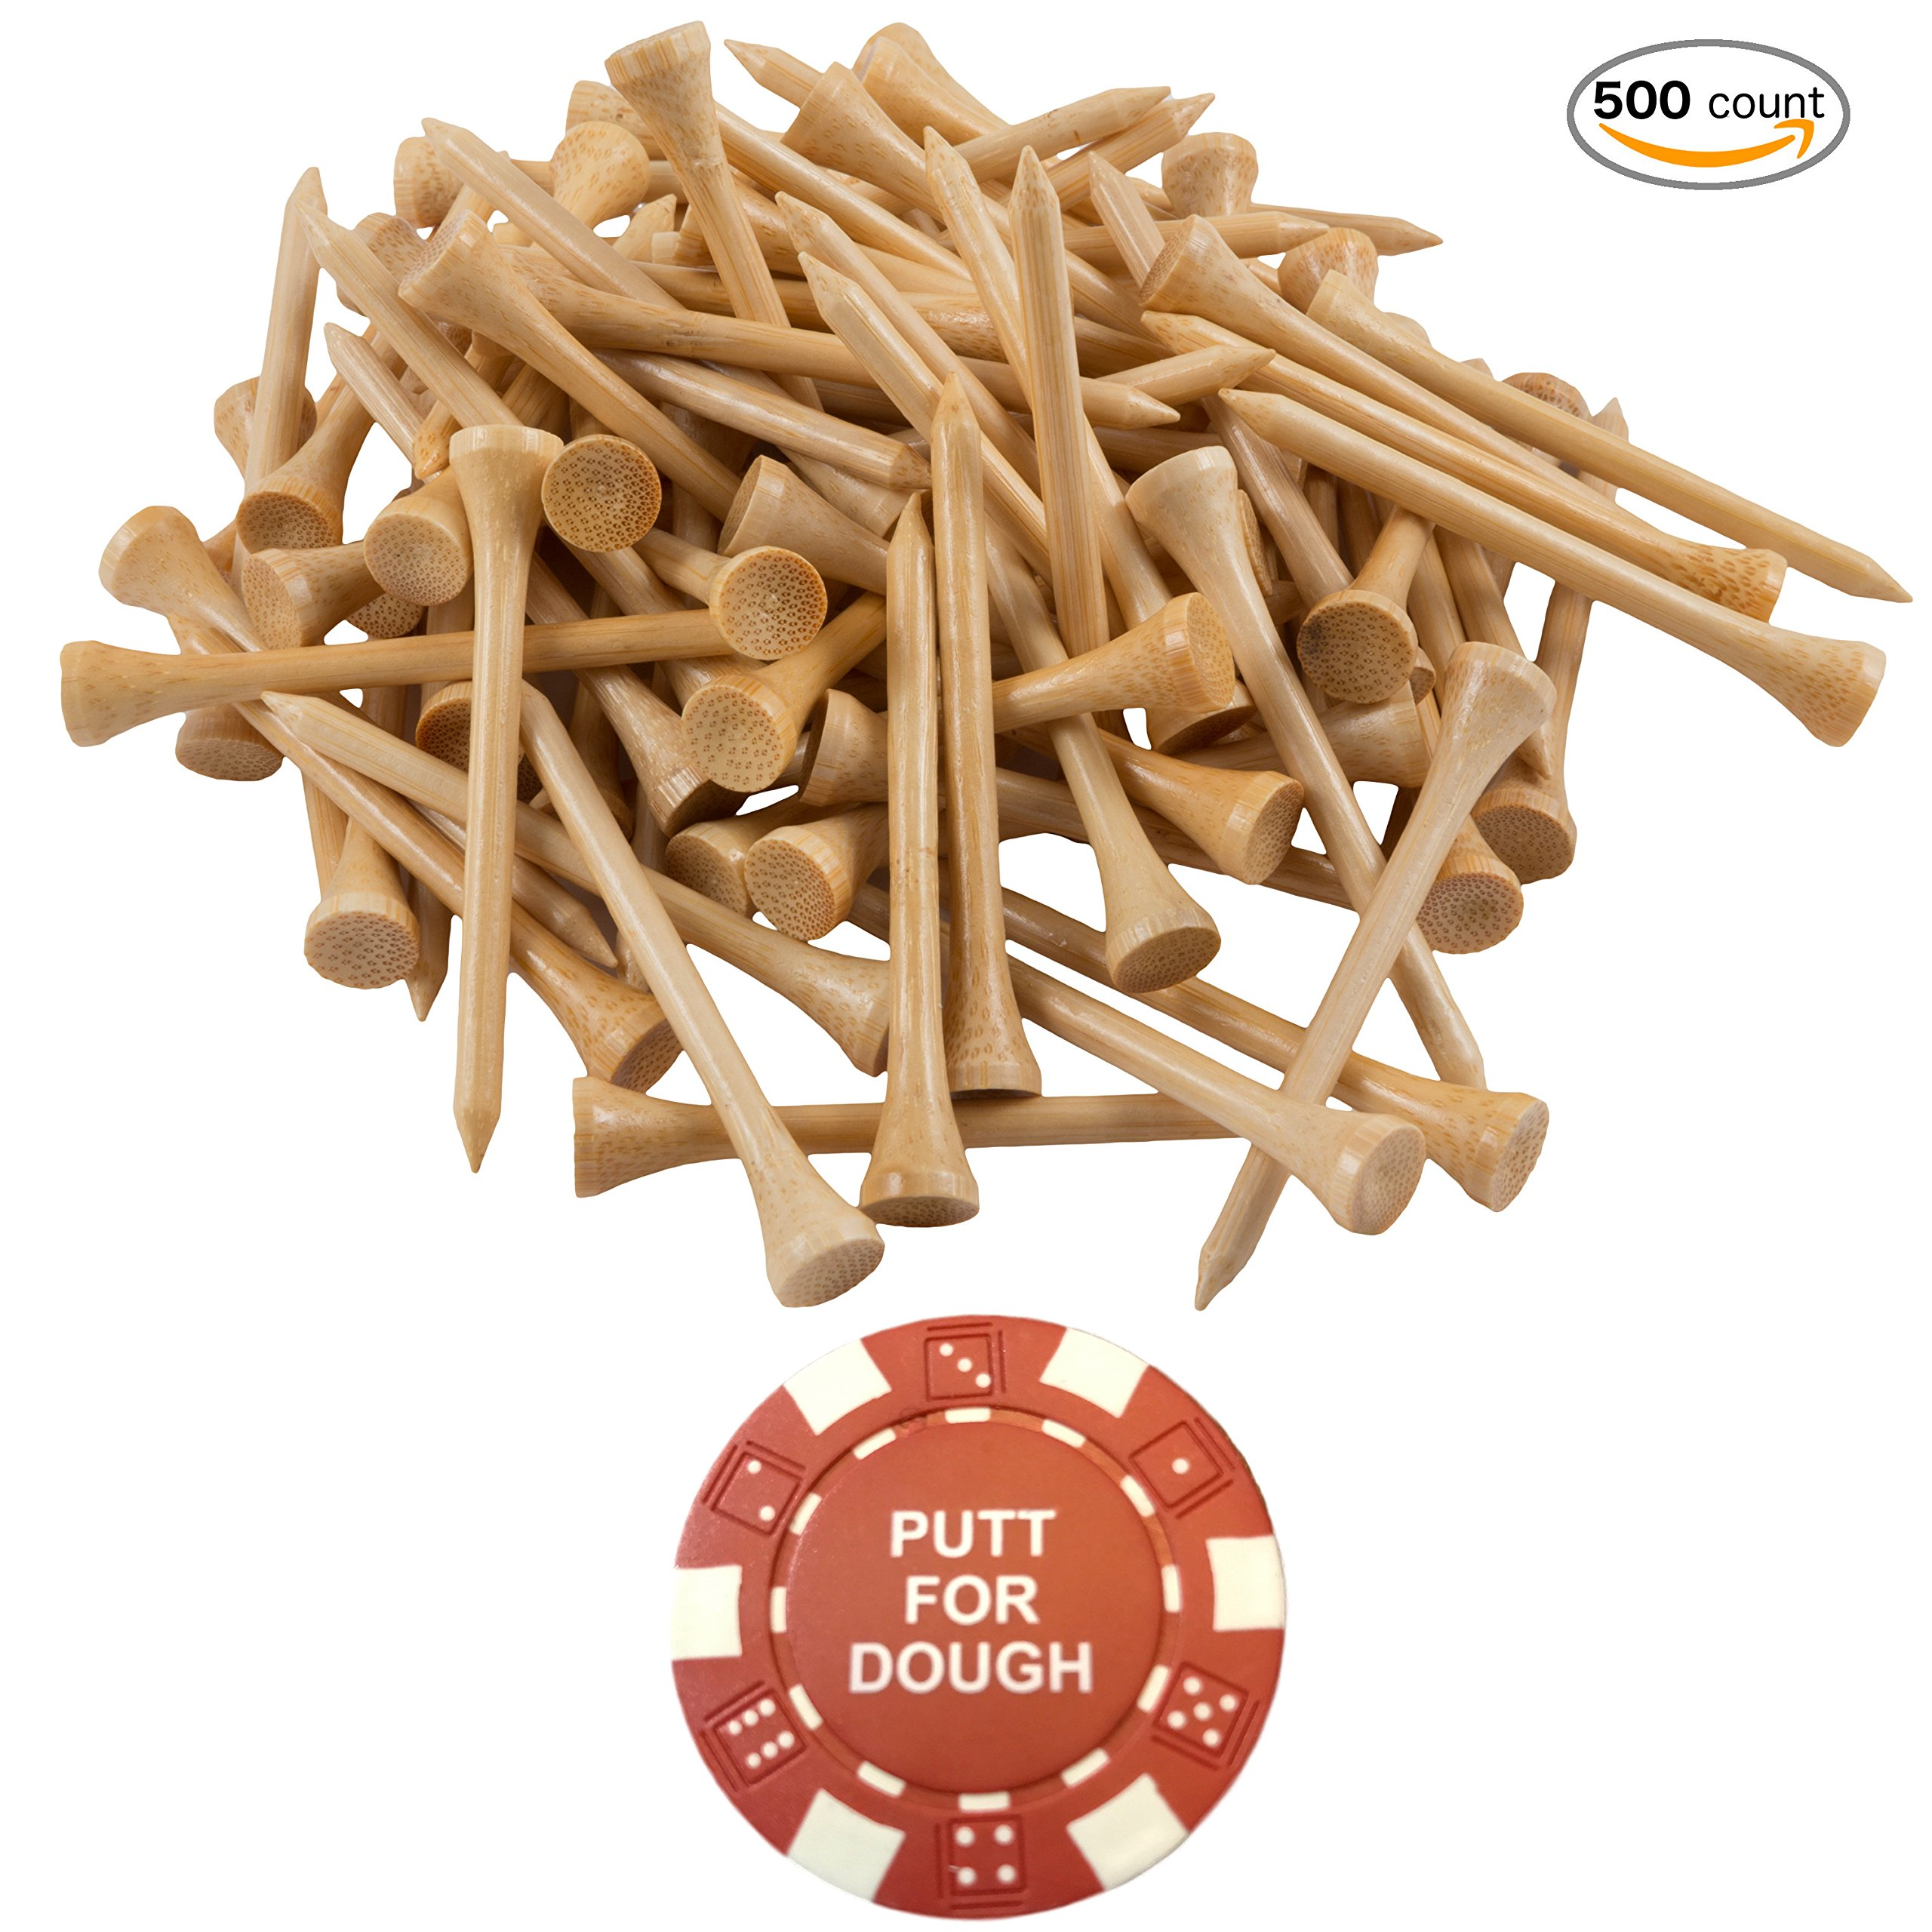 Wedge Guys 500 Count Professional Bamboo Golf Tees 2-3/4 inch - Free Poker Chip Ball Marker - Stronger Than Wood Tees Biodegradable & Less Friction PGA Approved by Wedge Guys